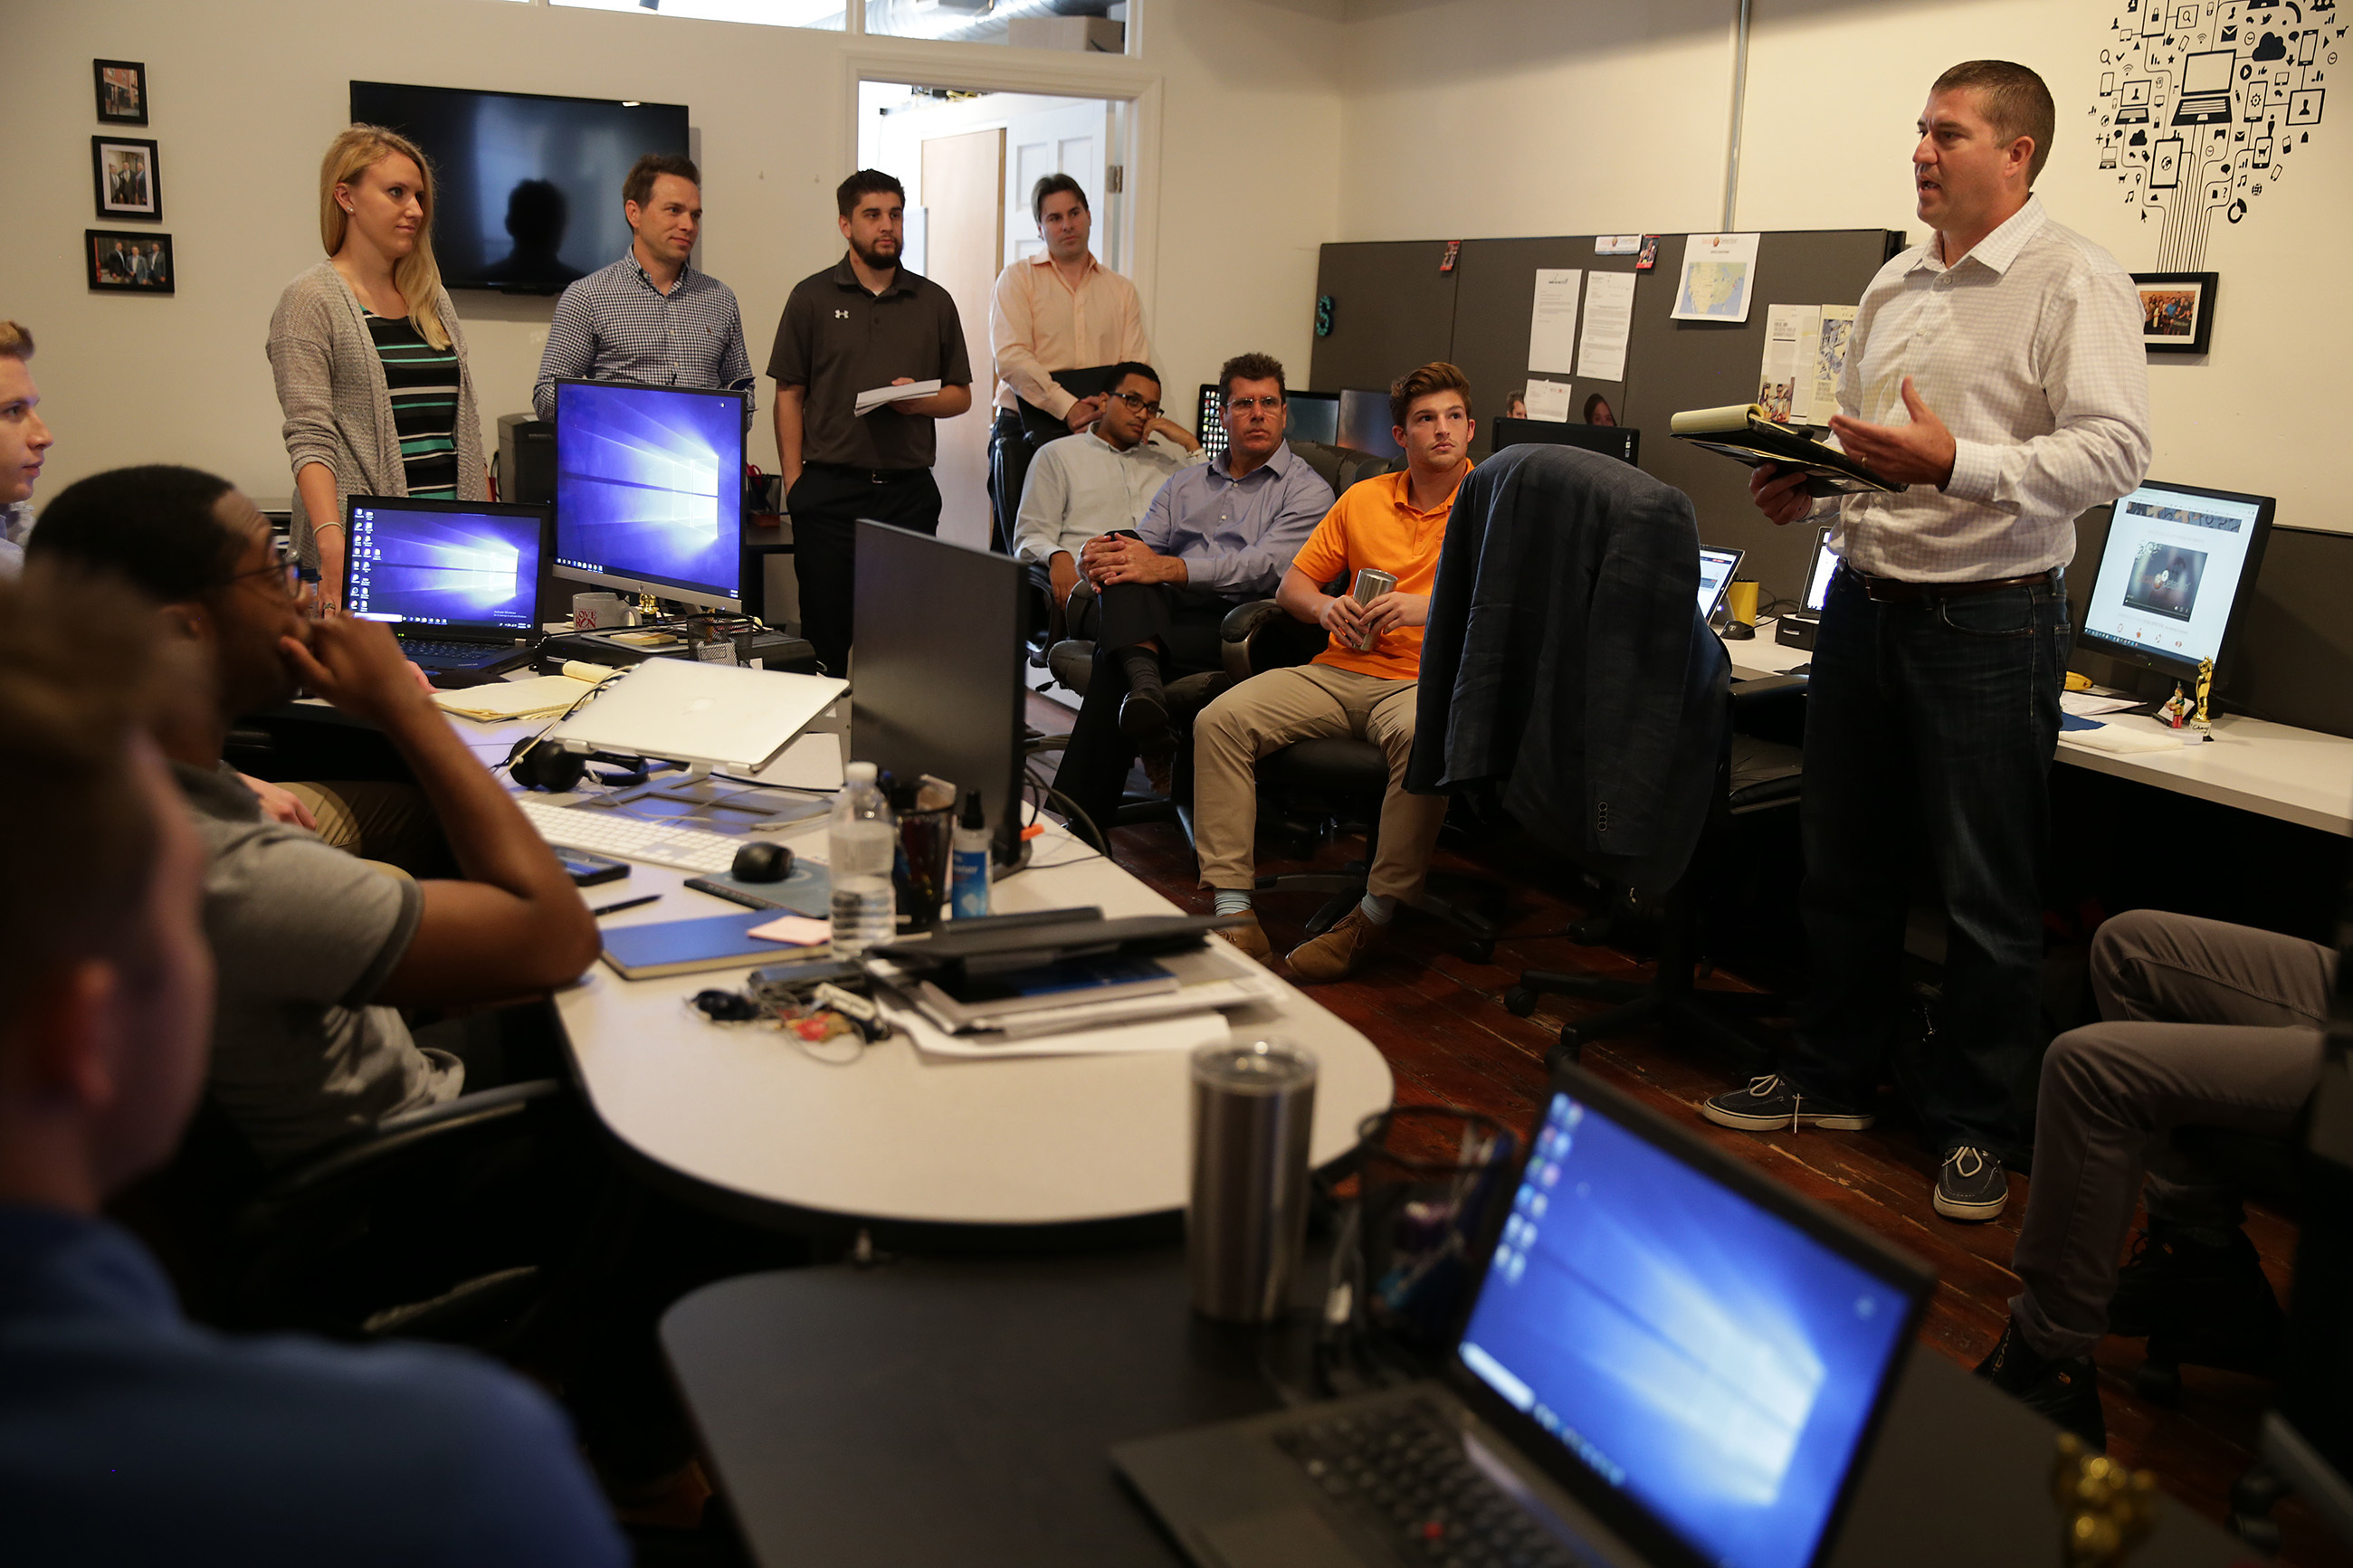 """Scott Catron, (right) cofounder of Social Detection, leads the """"daily huddle"""" at their office in Old City, one of the ways in which the start-up tries to build camaraderie among employees and, he hopes, retention."""